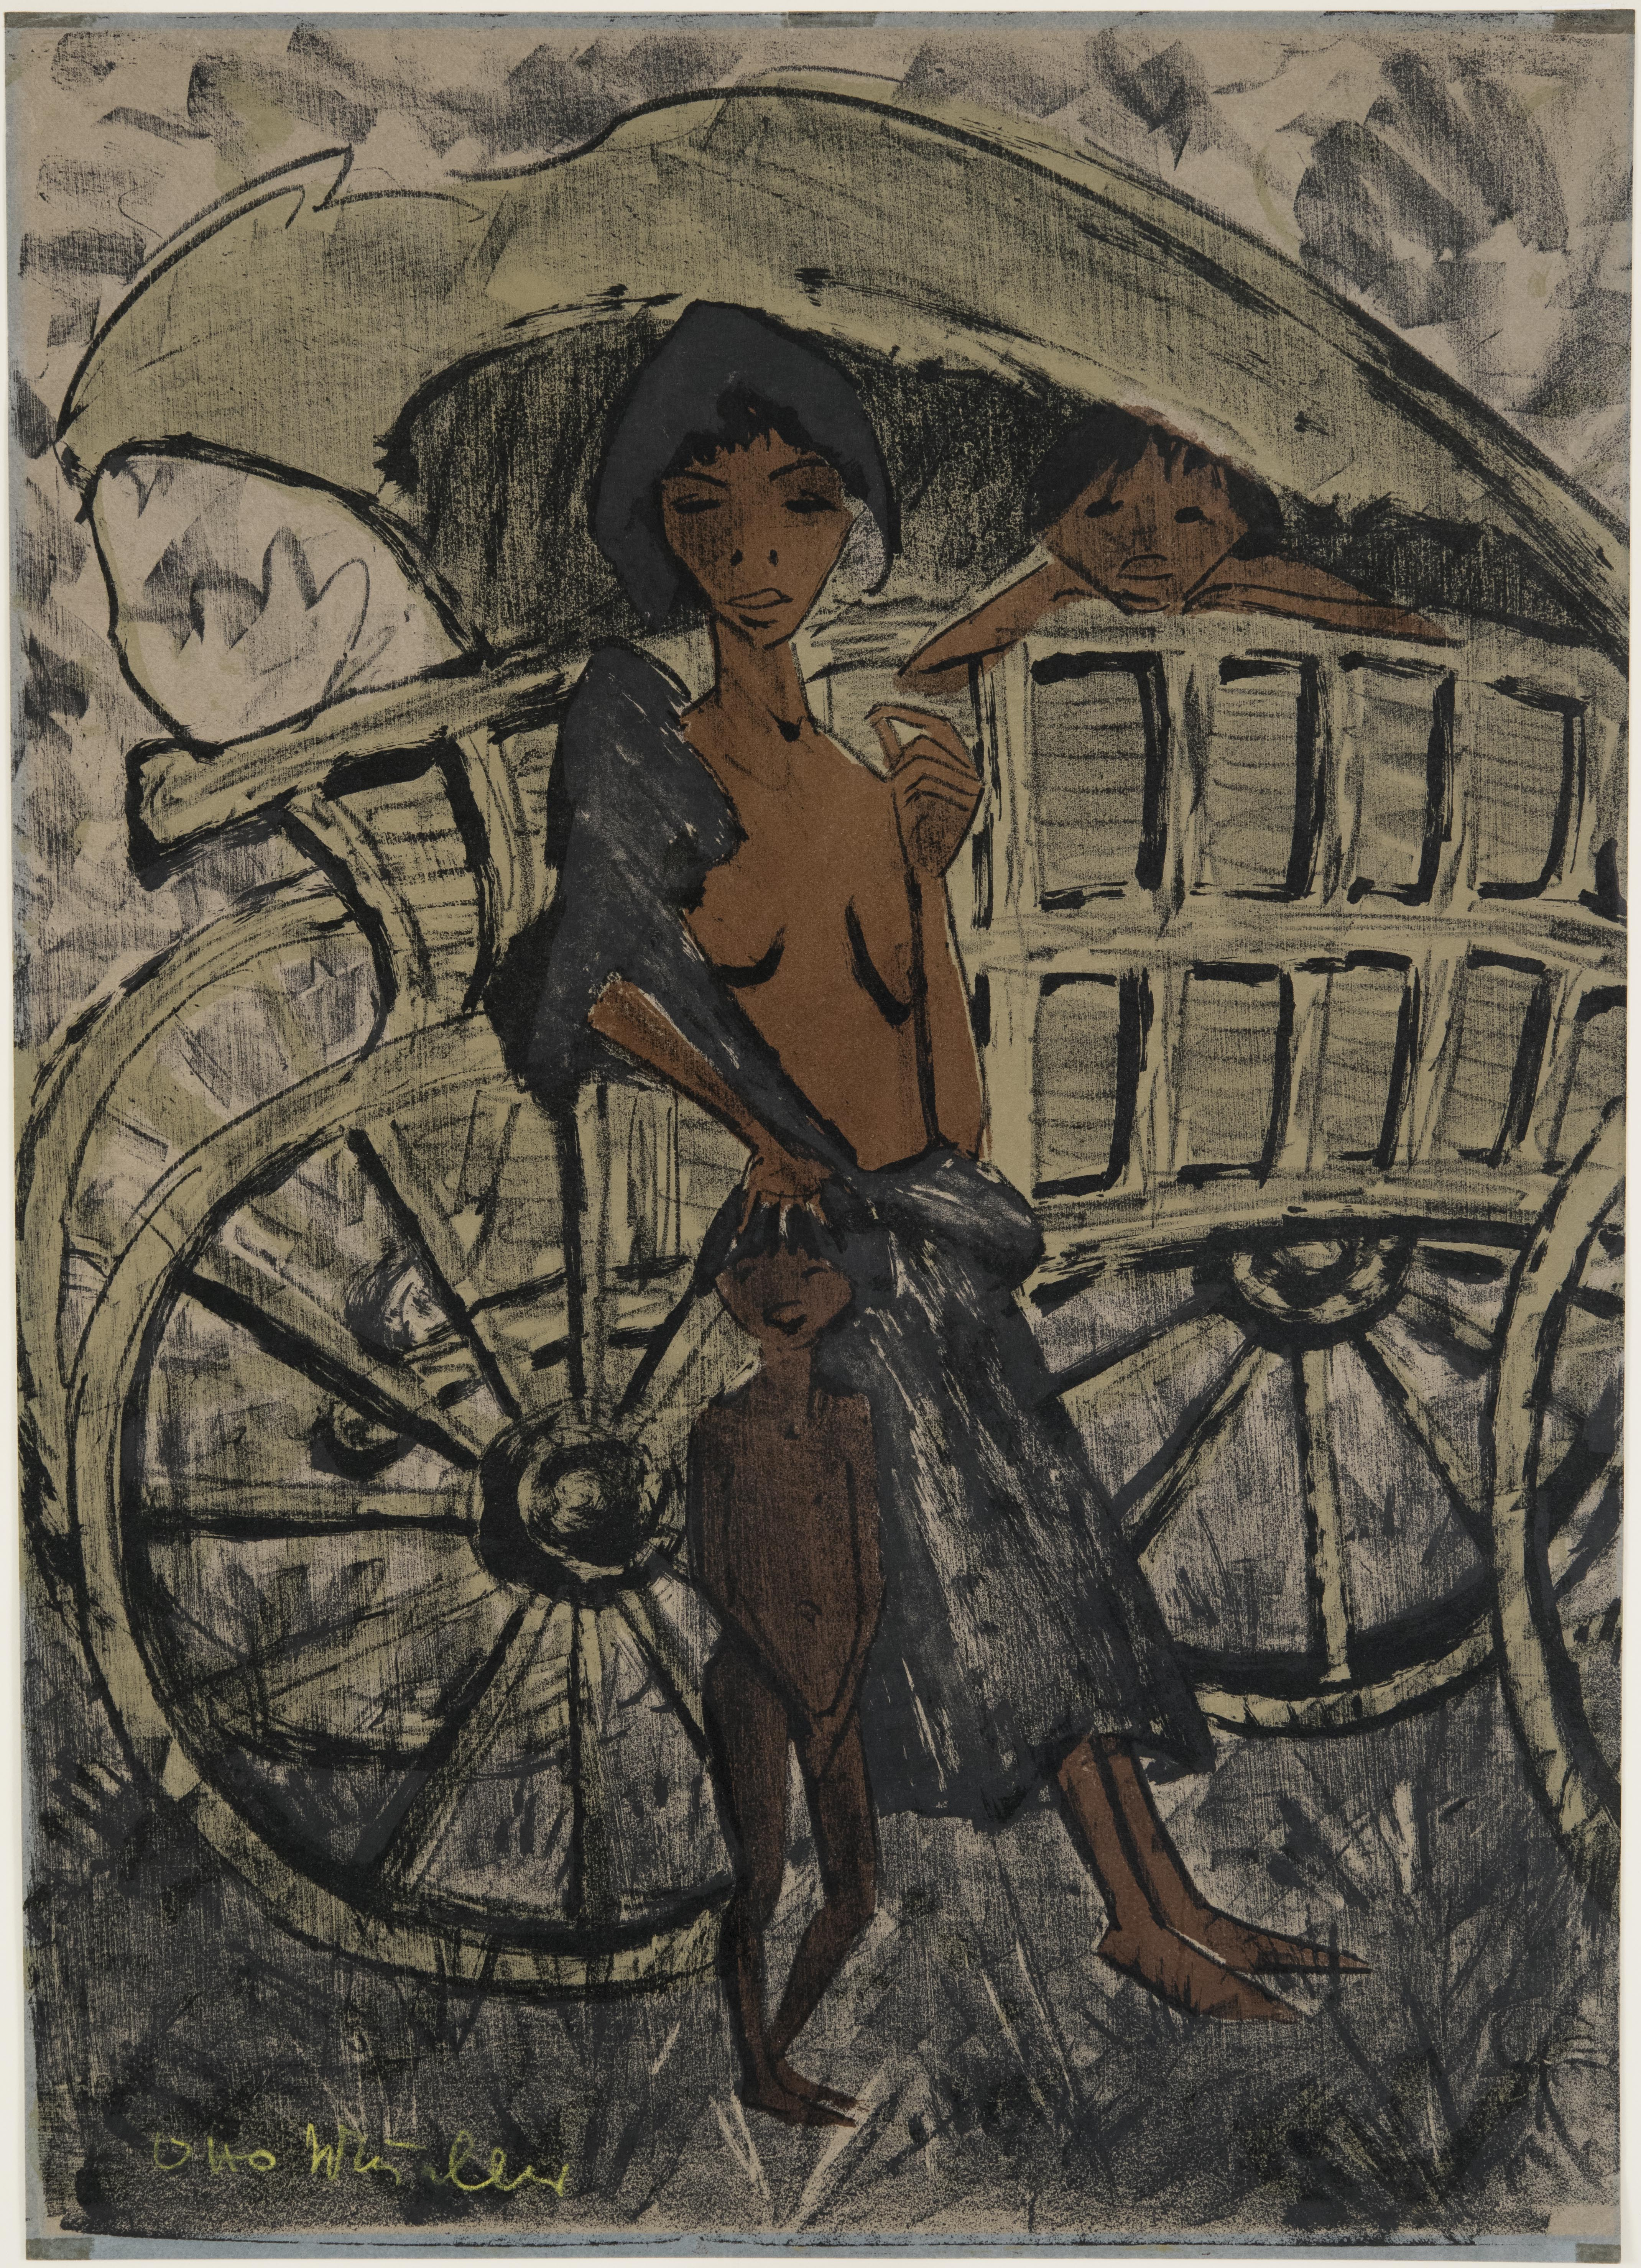 Otto Mueller, Gypsy Woman with Child in front of Covered Wagon, 1926 - 1927